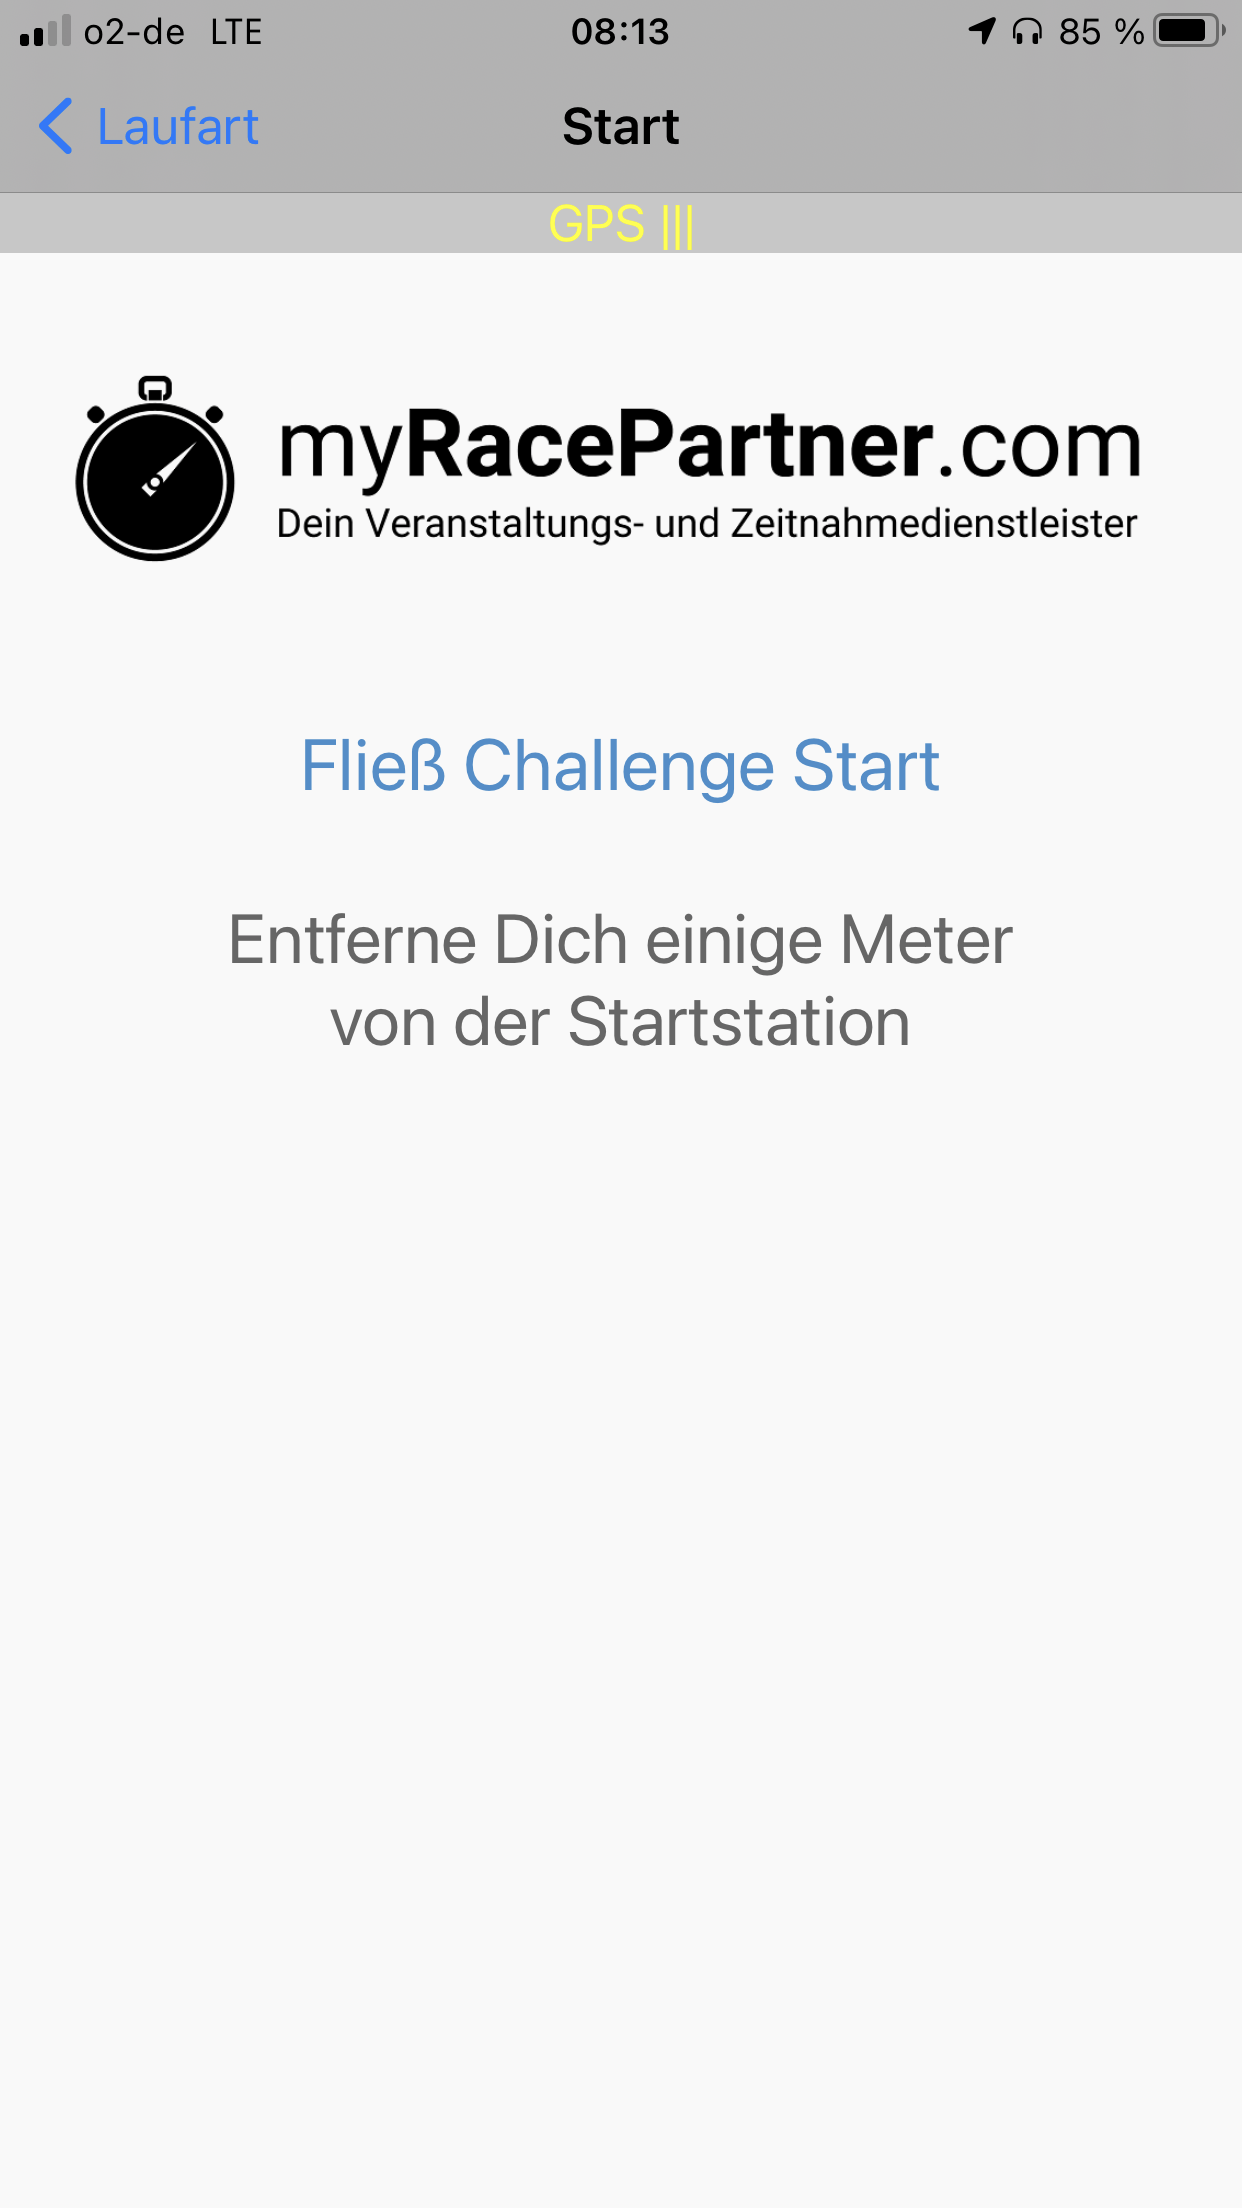 myRacePartner.com - Die App am Start 01